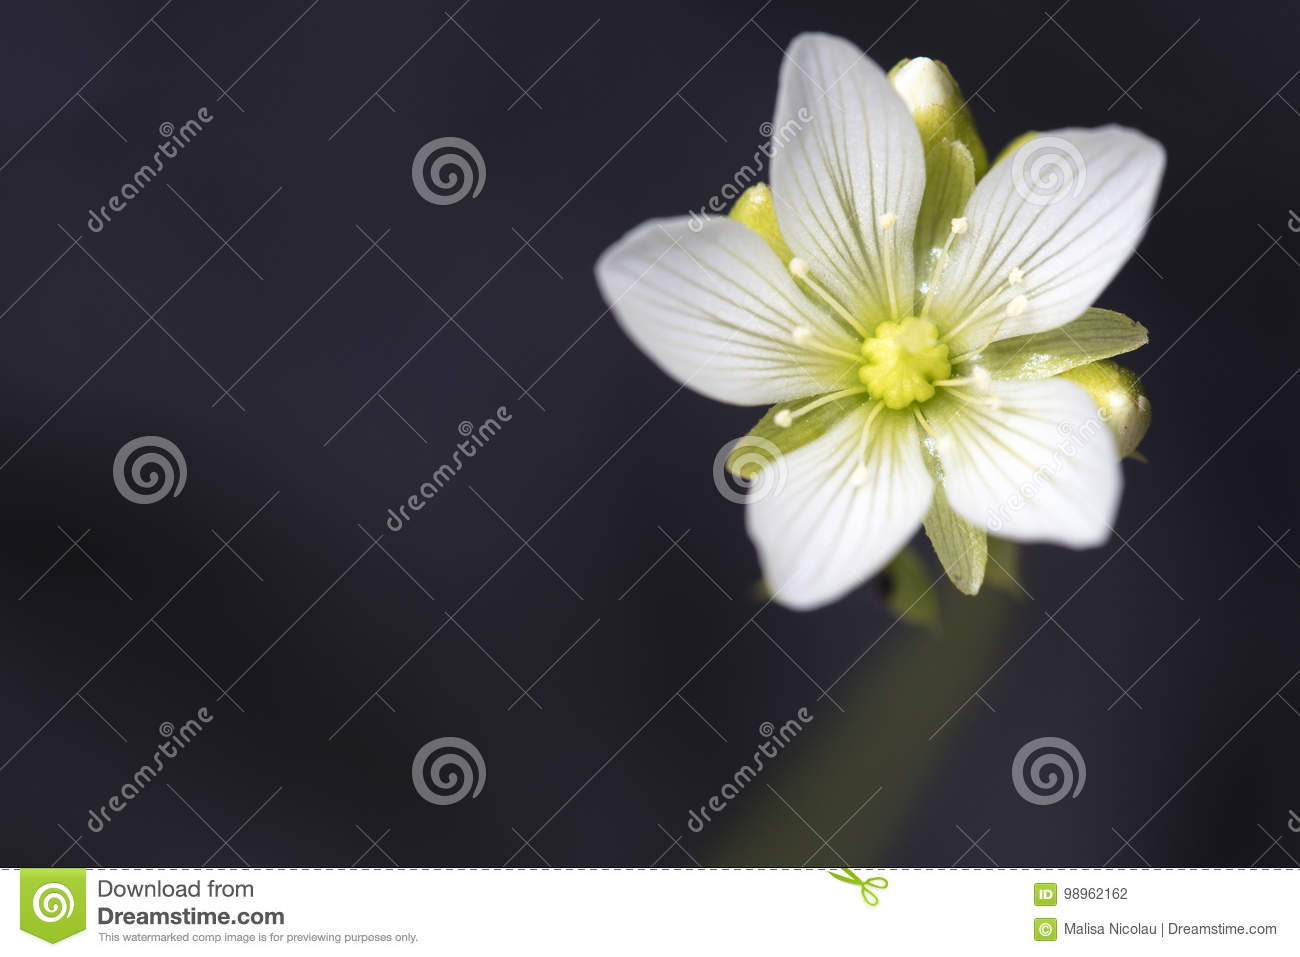 Small White Flower Of The Venus Flytrap Plant Stock Photo Image Of